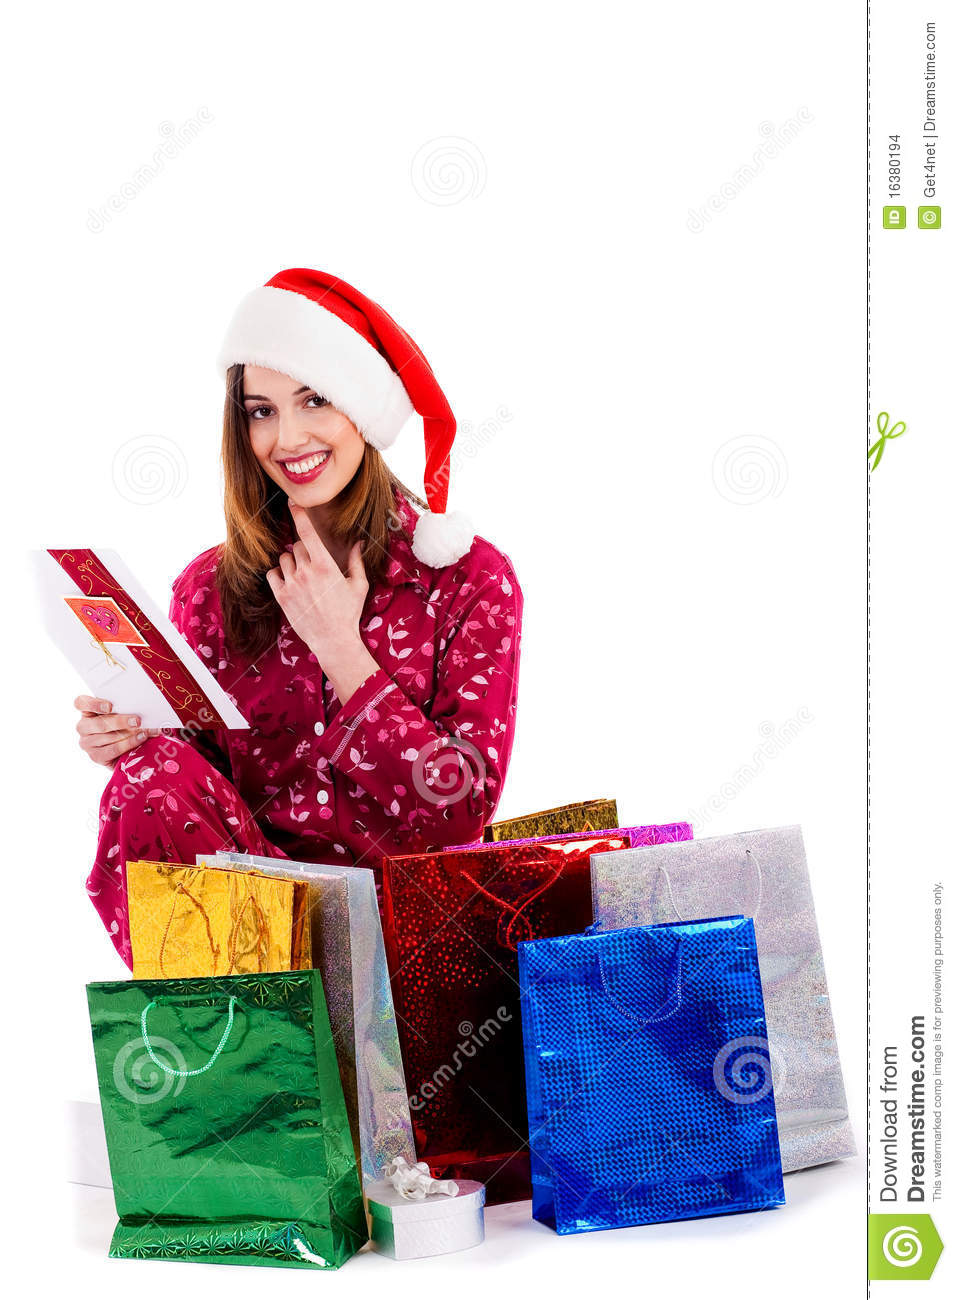 Young Lady Reading Christmas Card Stock Photo - Image of cheerful ...